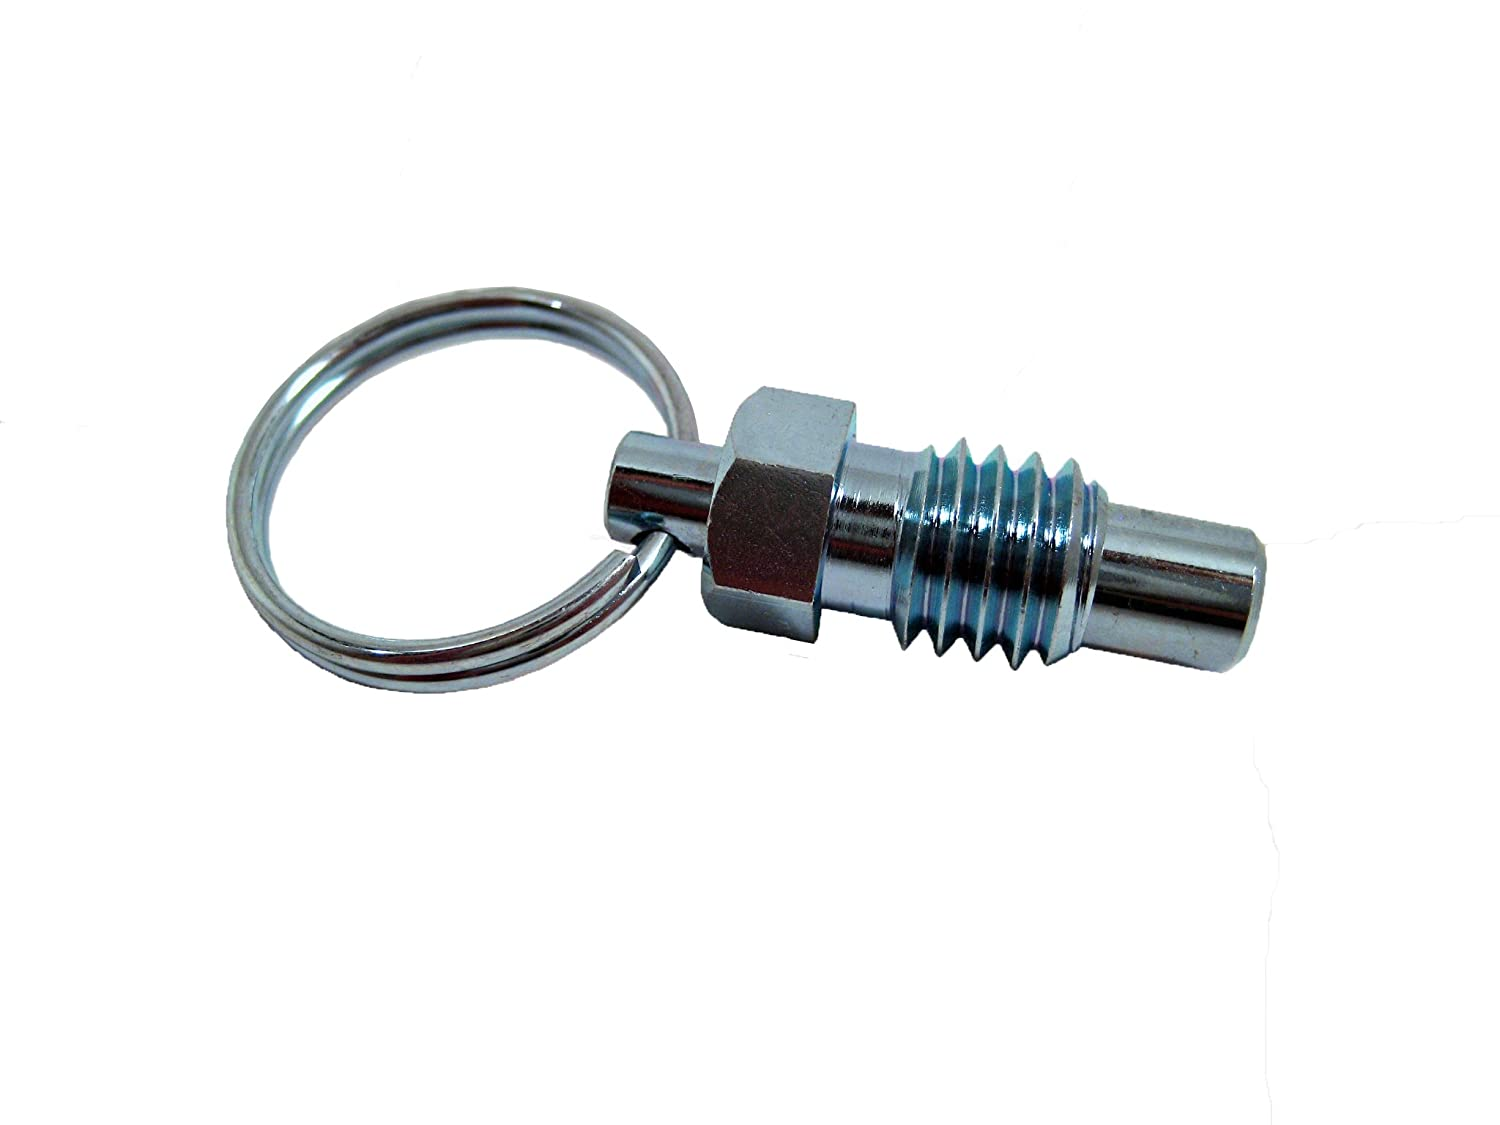 0.31 Thread Length 1//4-20 Thread Size SPRP Series Steel Non Lock-Out Type Inch Size Stubby Hand Retractable Spring Plunger with Pull Ring